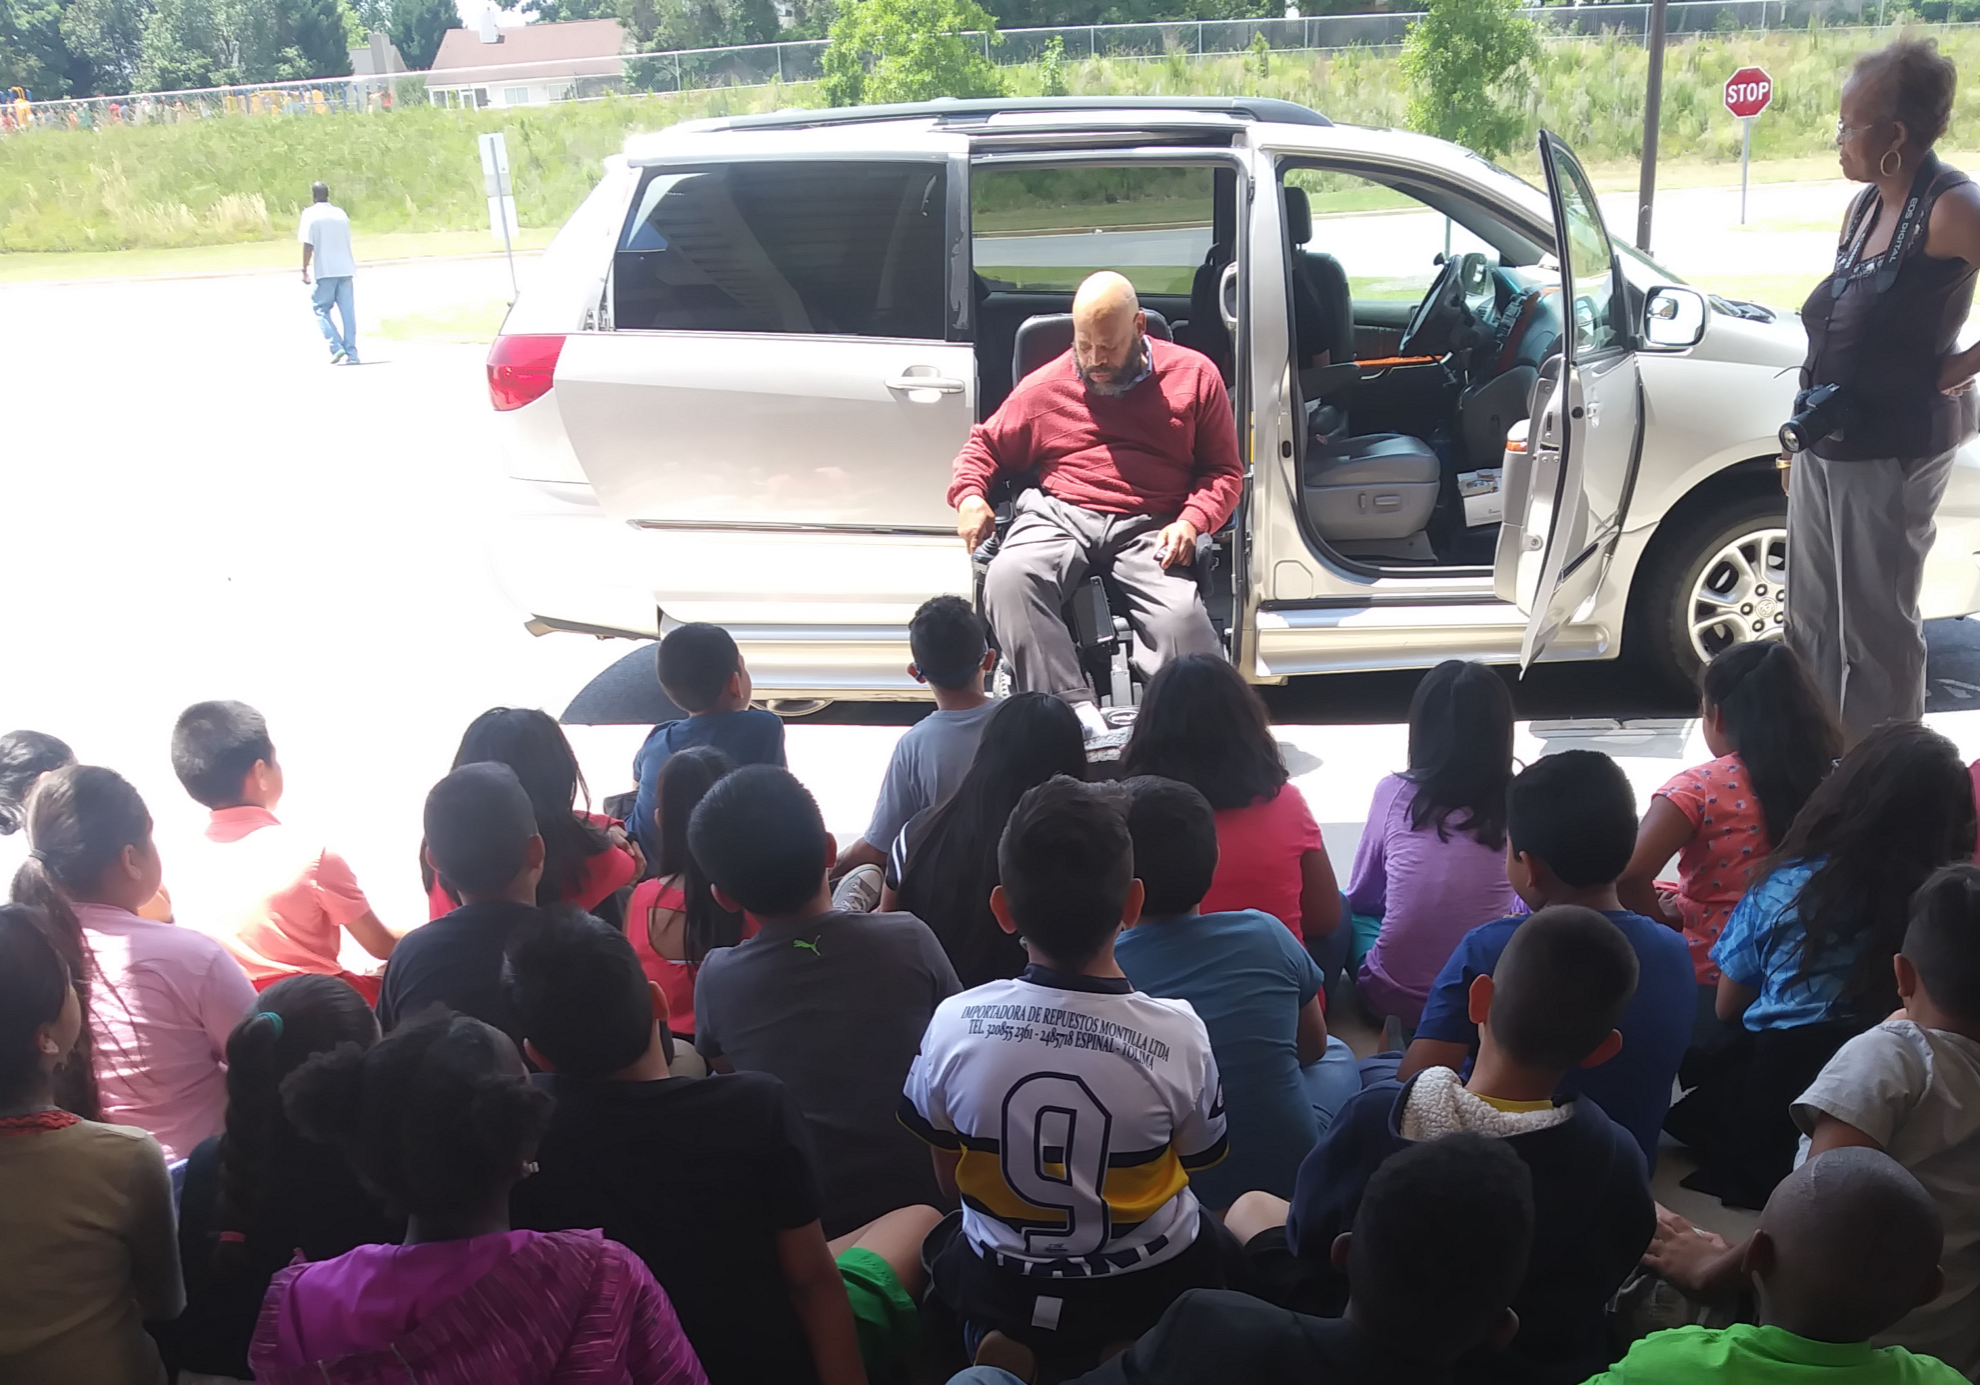 black male exiting a modified van at the curb in front of a group of seated people.